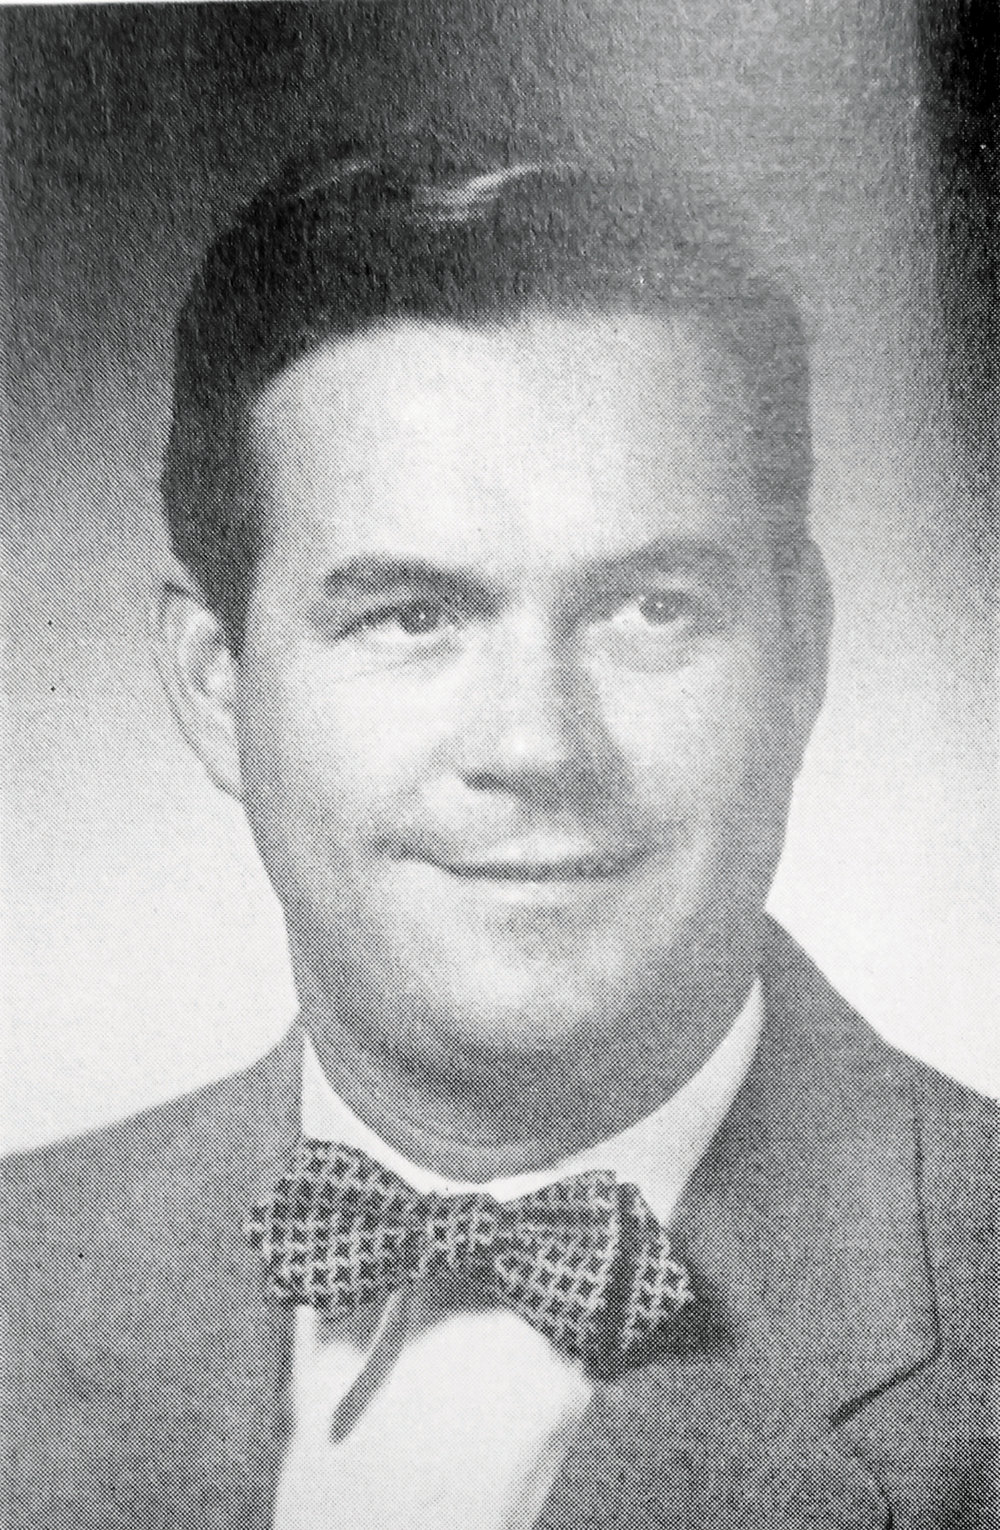 Thomas Bryant Buck, Jr